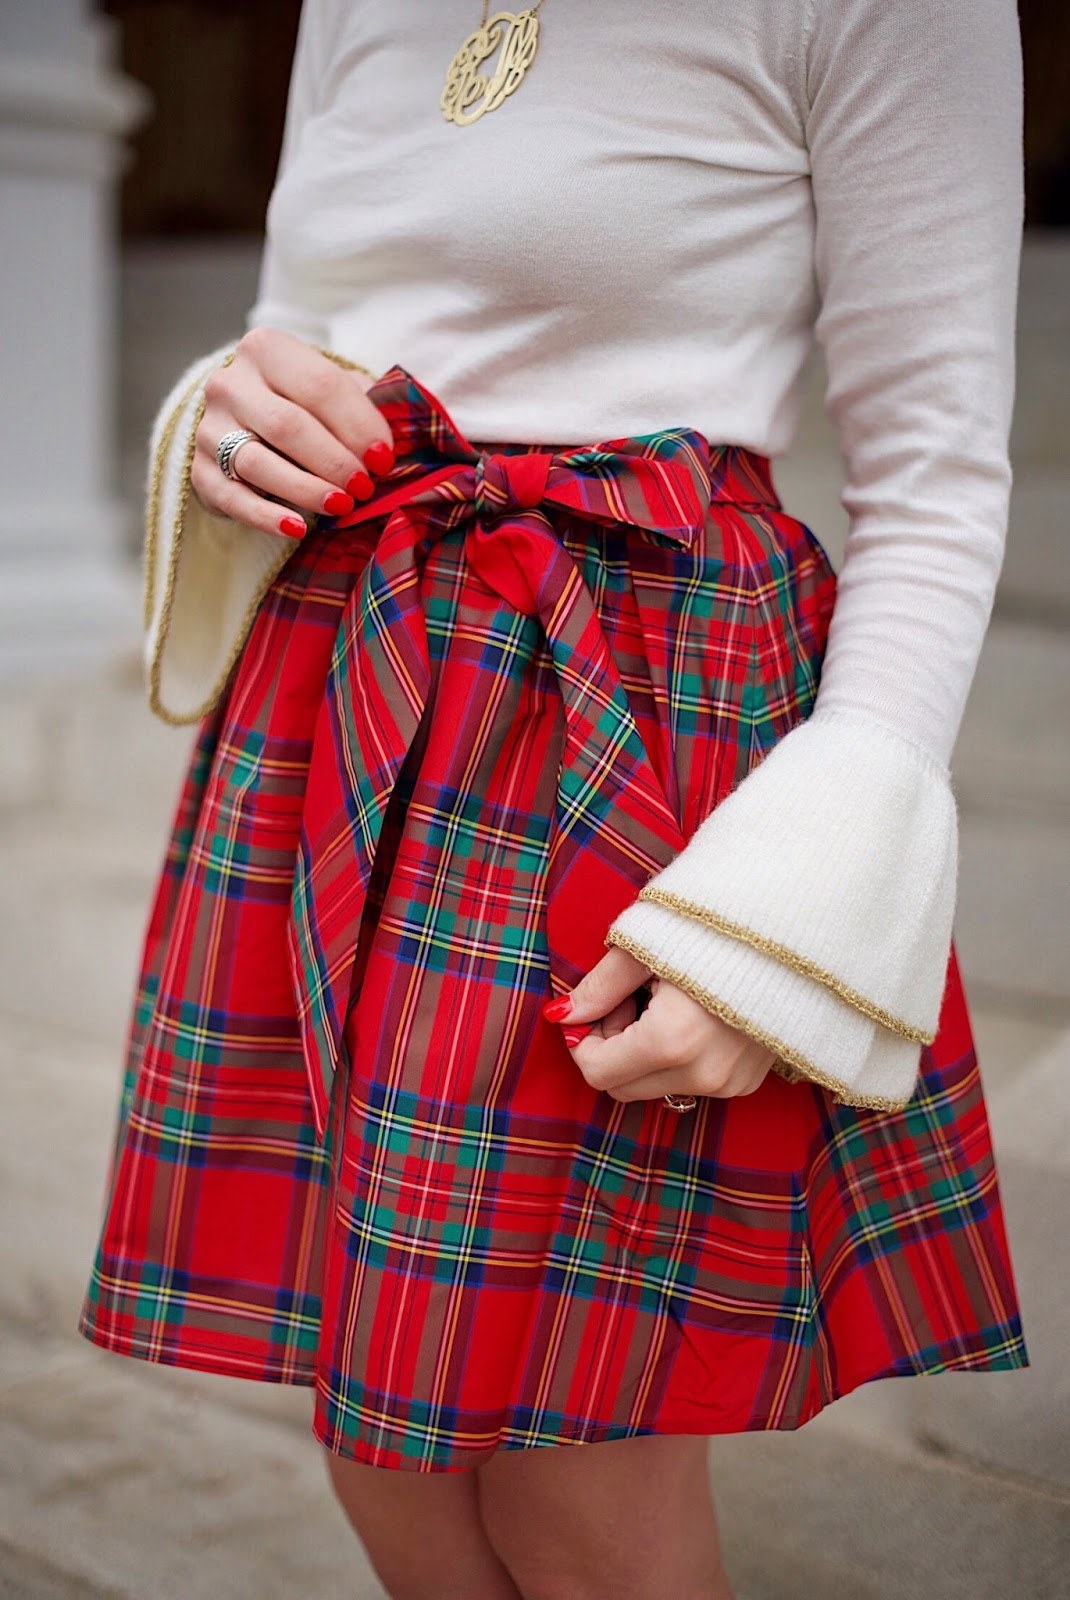 Vineyard Vines Jolly Plaid Party Skirt - Something Delightful Blog